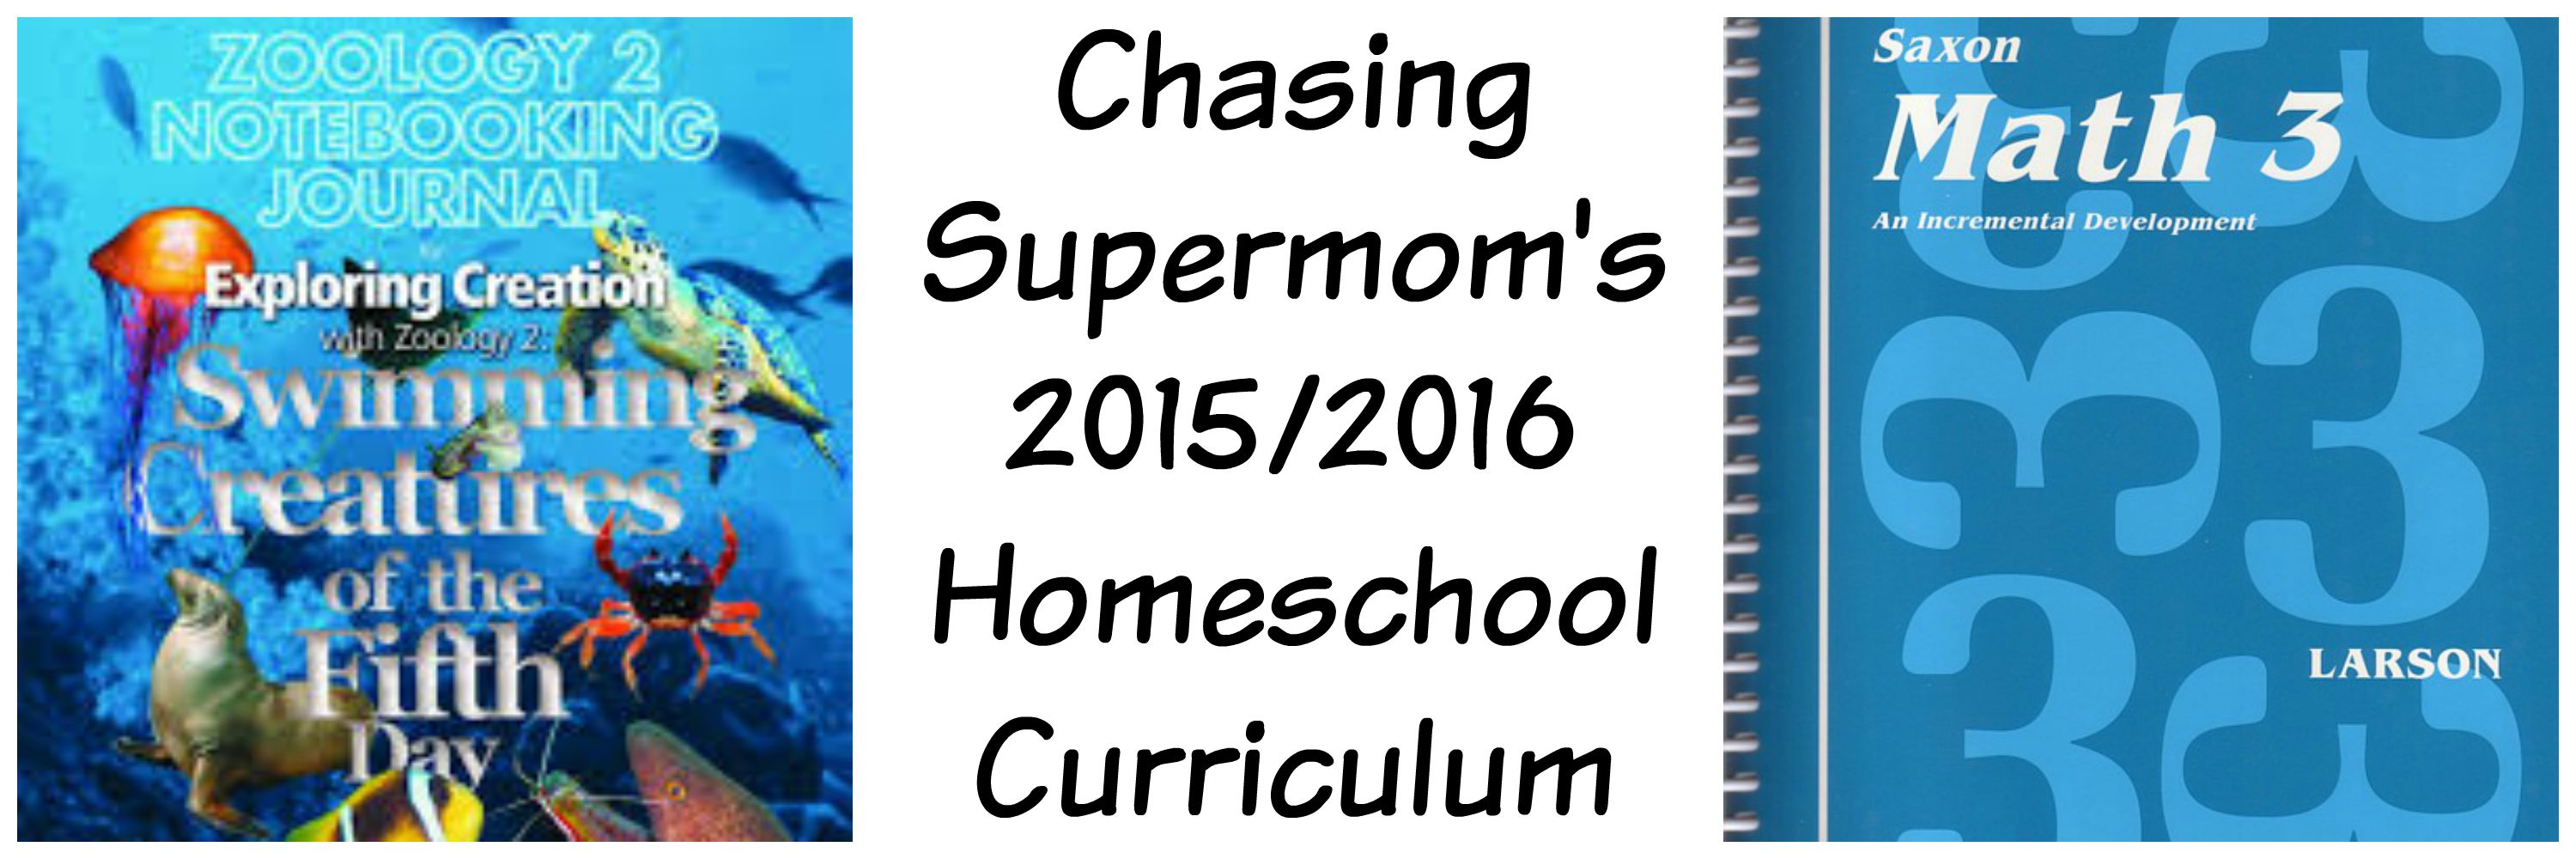 Chasing Supermom's Homeschool Curriculum 2015/2016